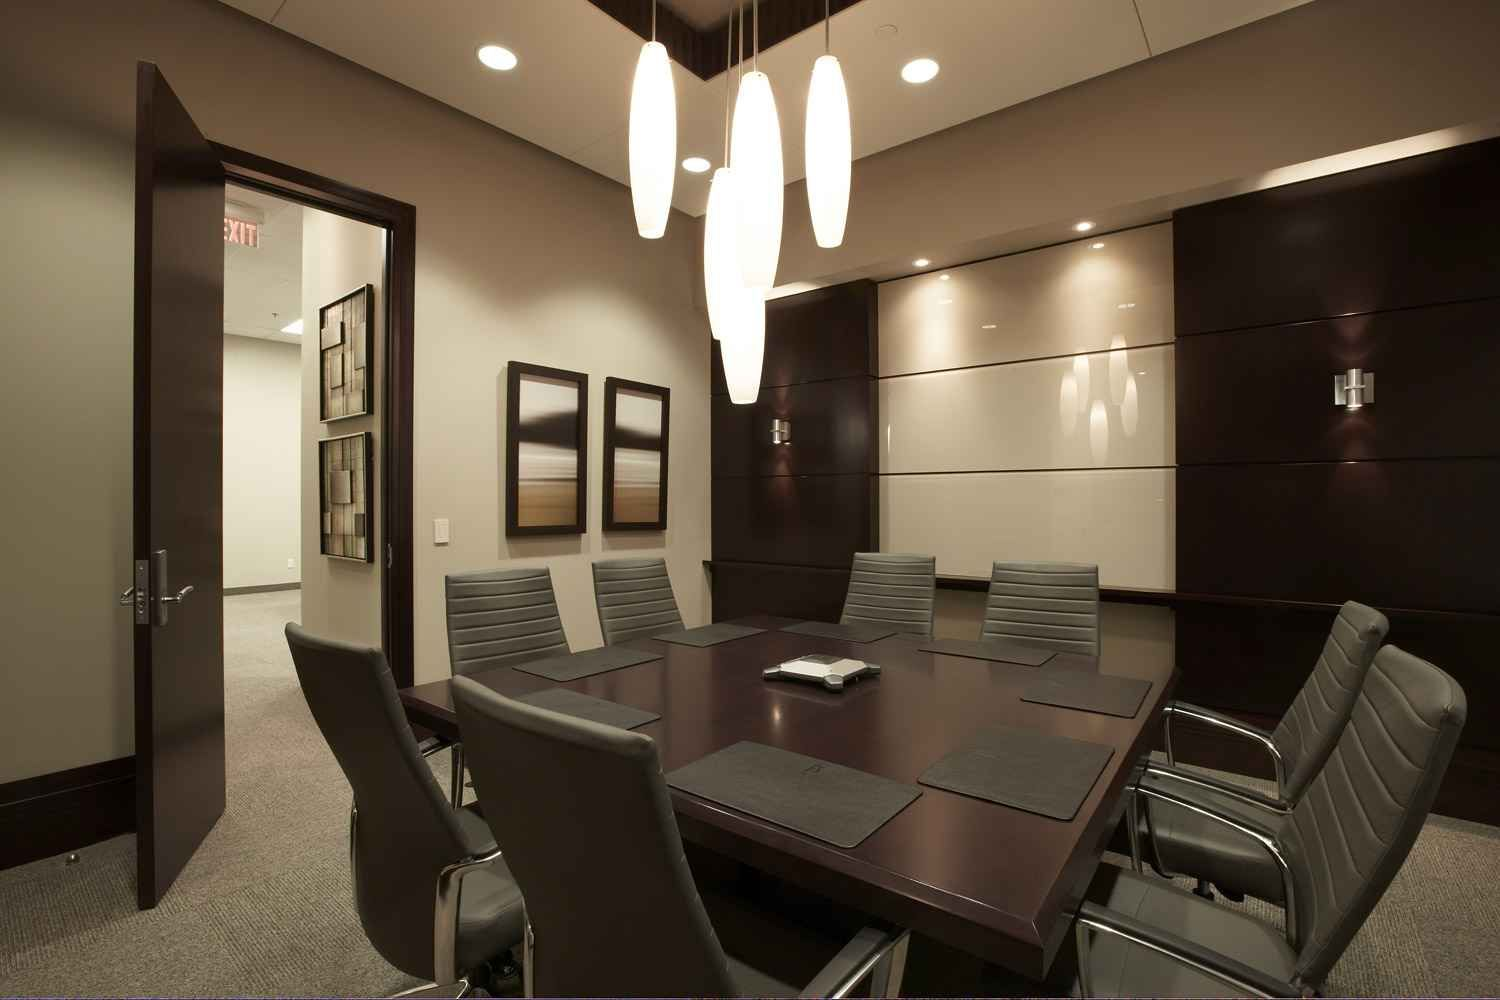 architecture simple office room. Modern Light Executive Office Furniture | Commercial To Help Your Business Architect Architecture Simple Room M